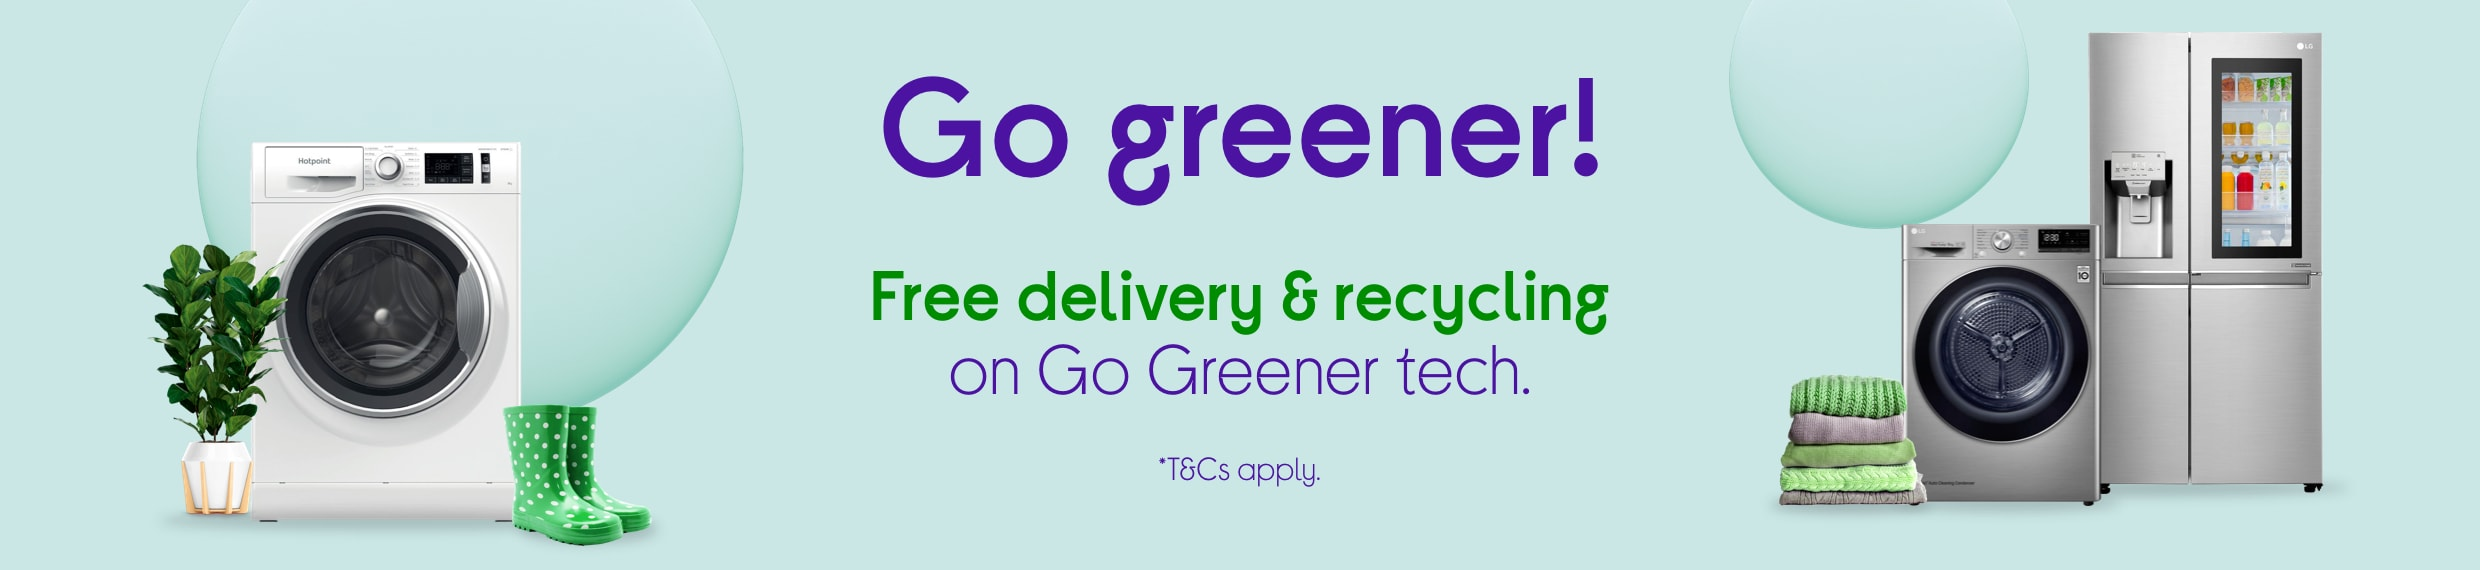 Go greener. Free delivery & recycling on our Go Greener range. Easy come, easy go!